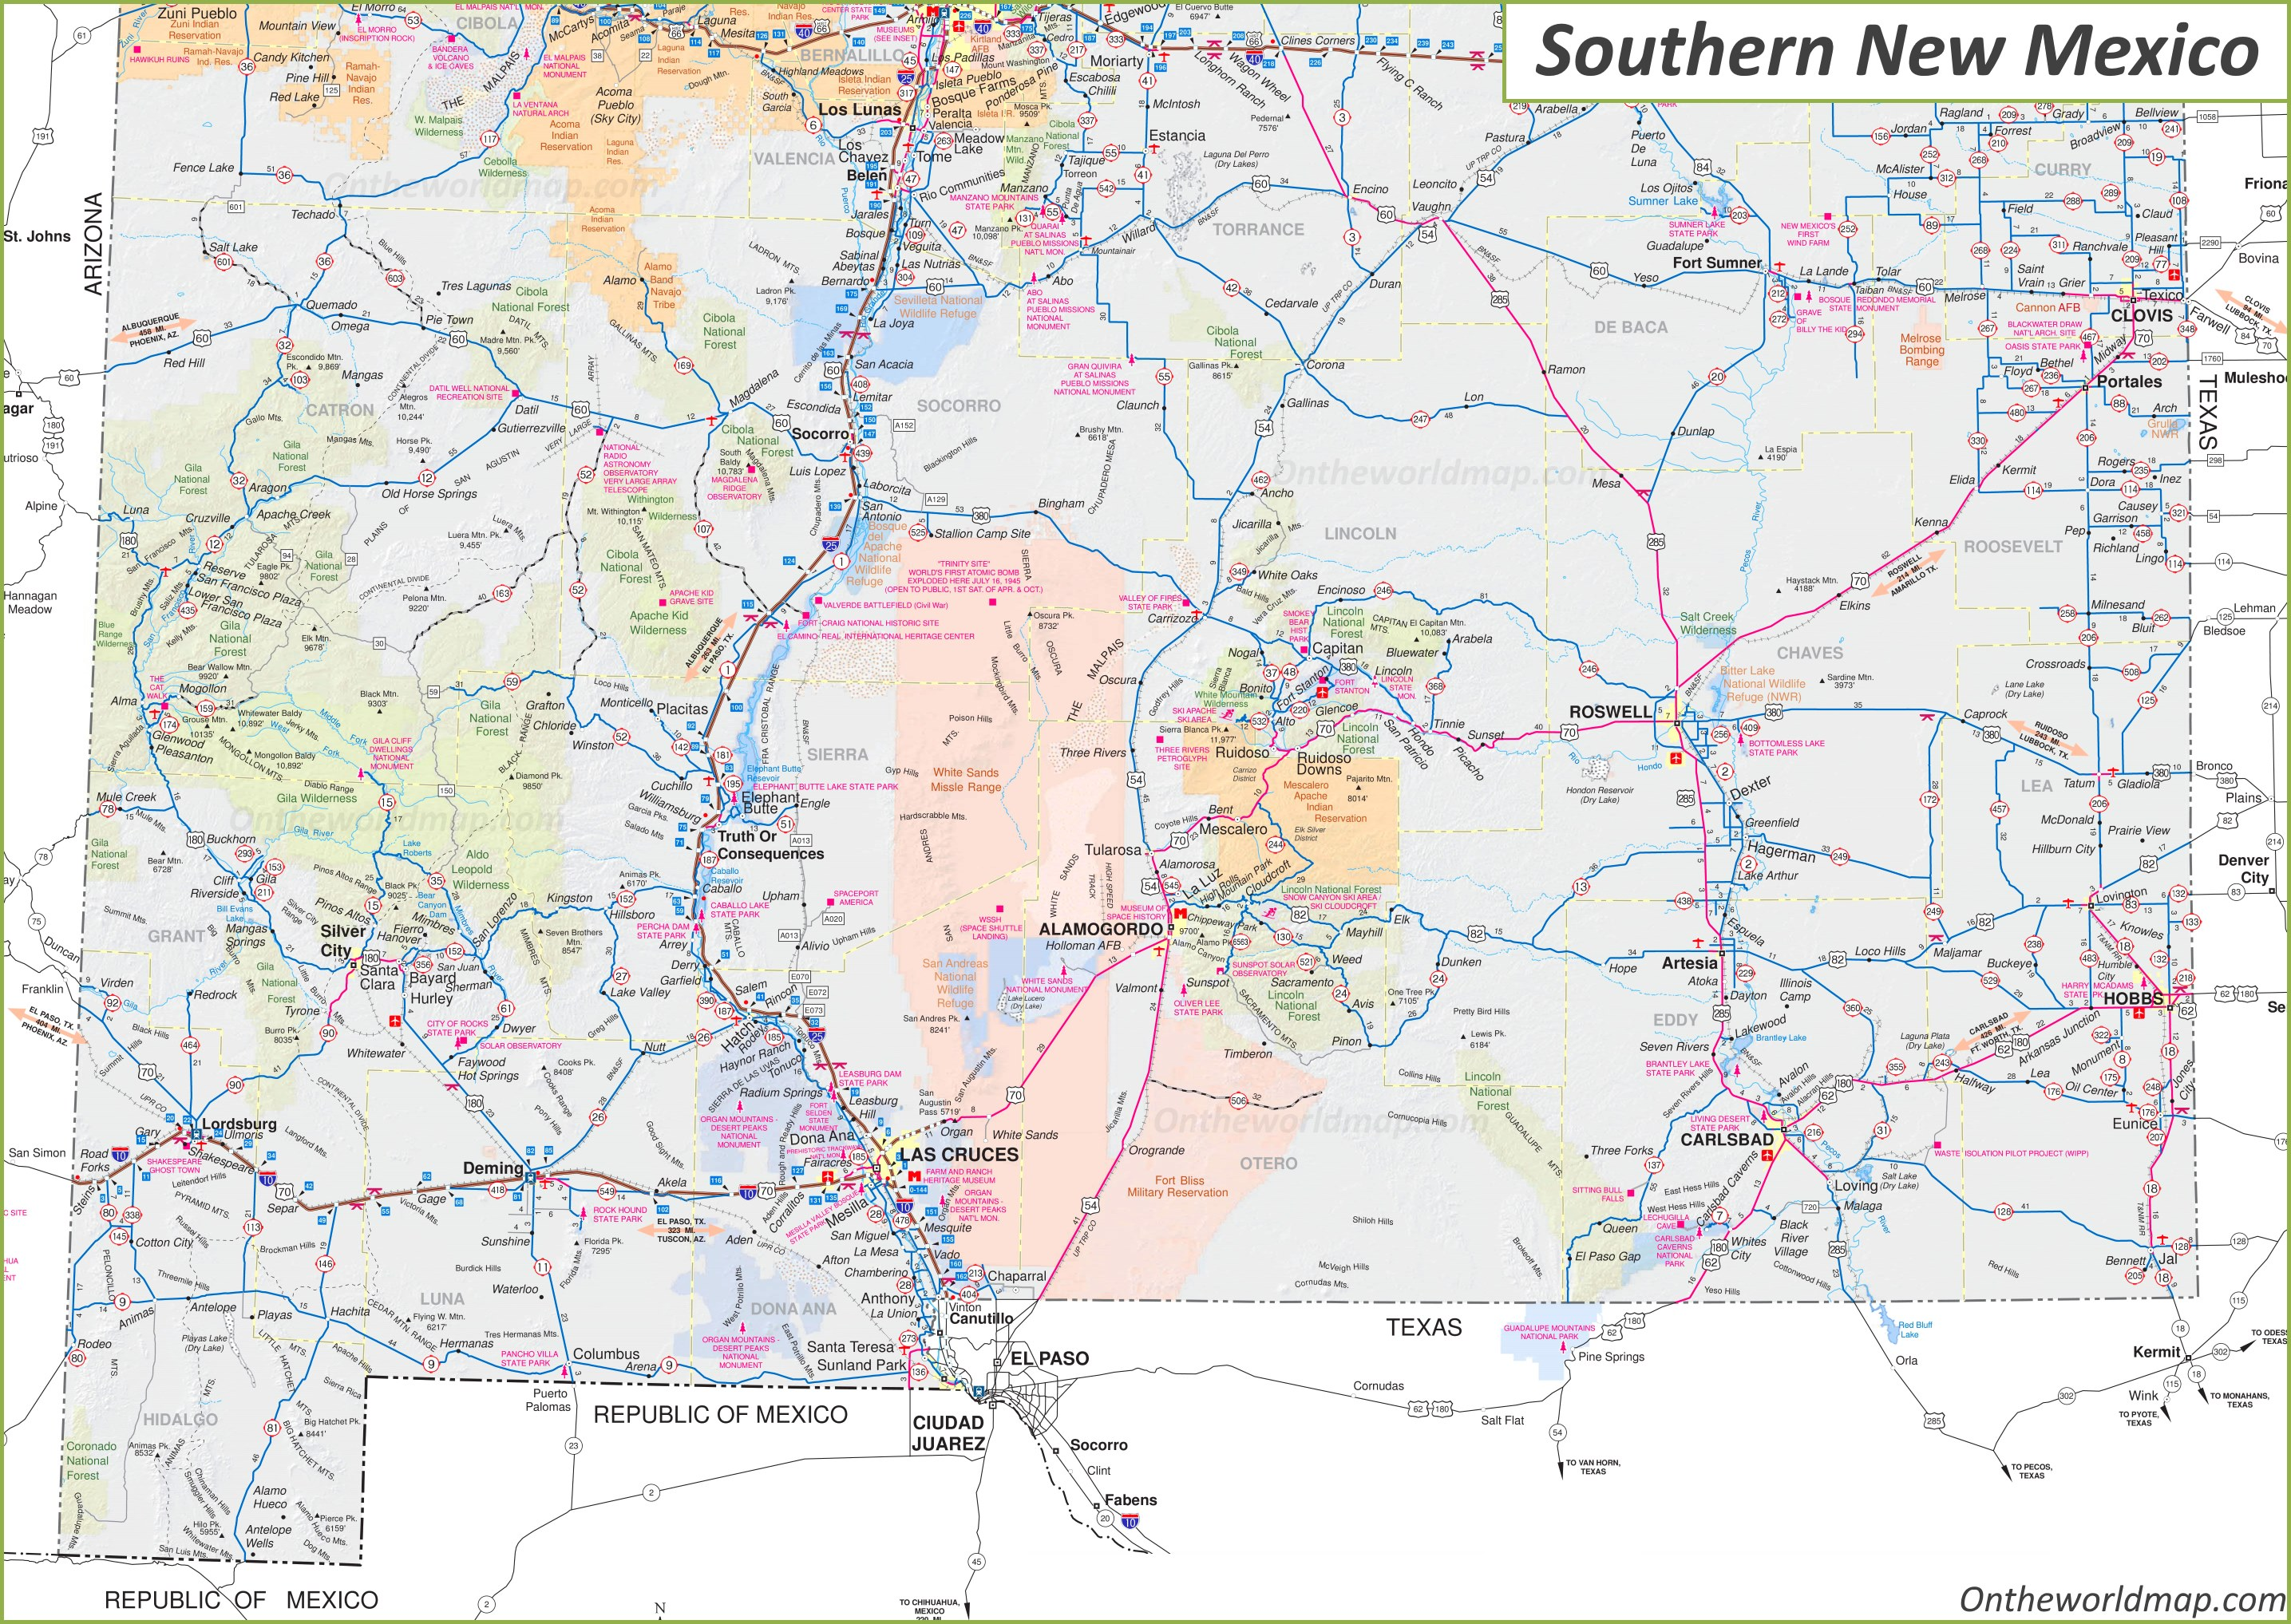 Map of Southern New Mexico